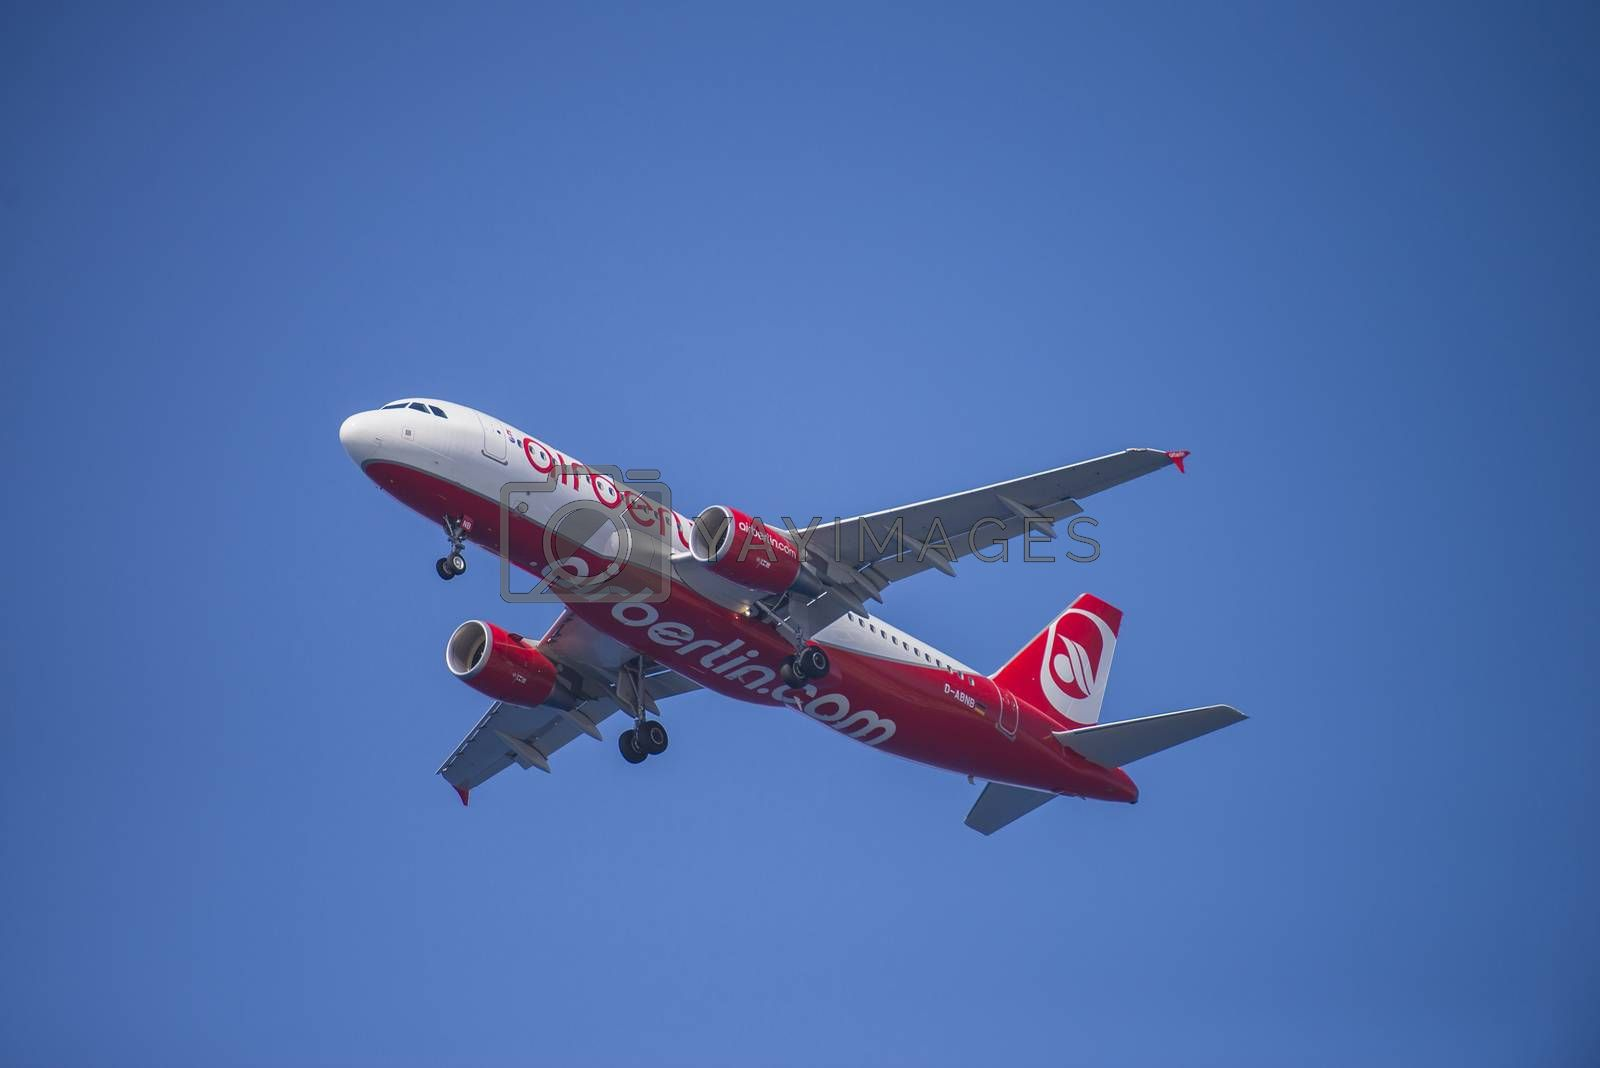 Air-Berlin, Germany, Airbus a320-214. The pictures of the planes are shot very close an airport just before landing. September 2013.